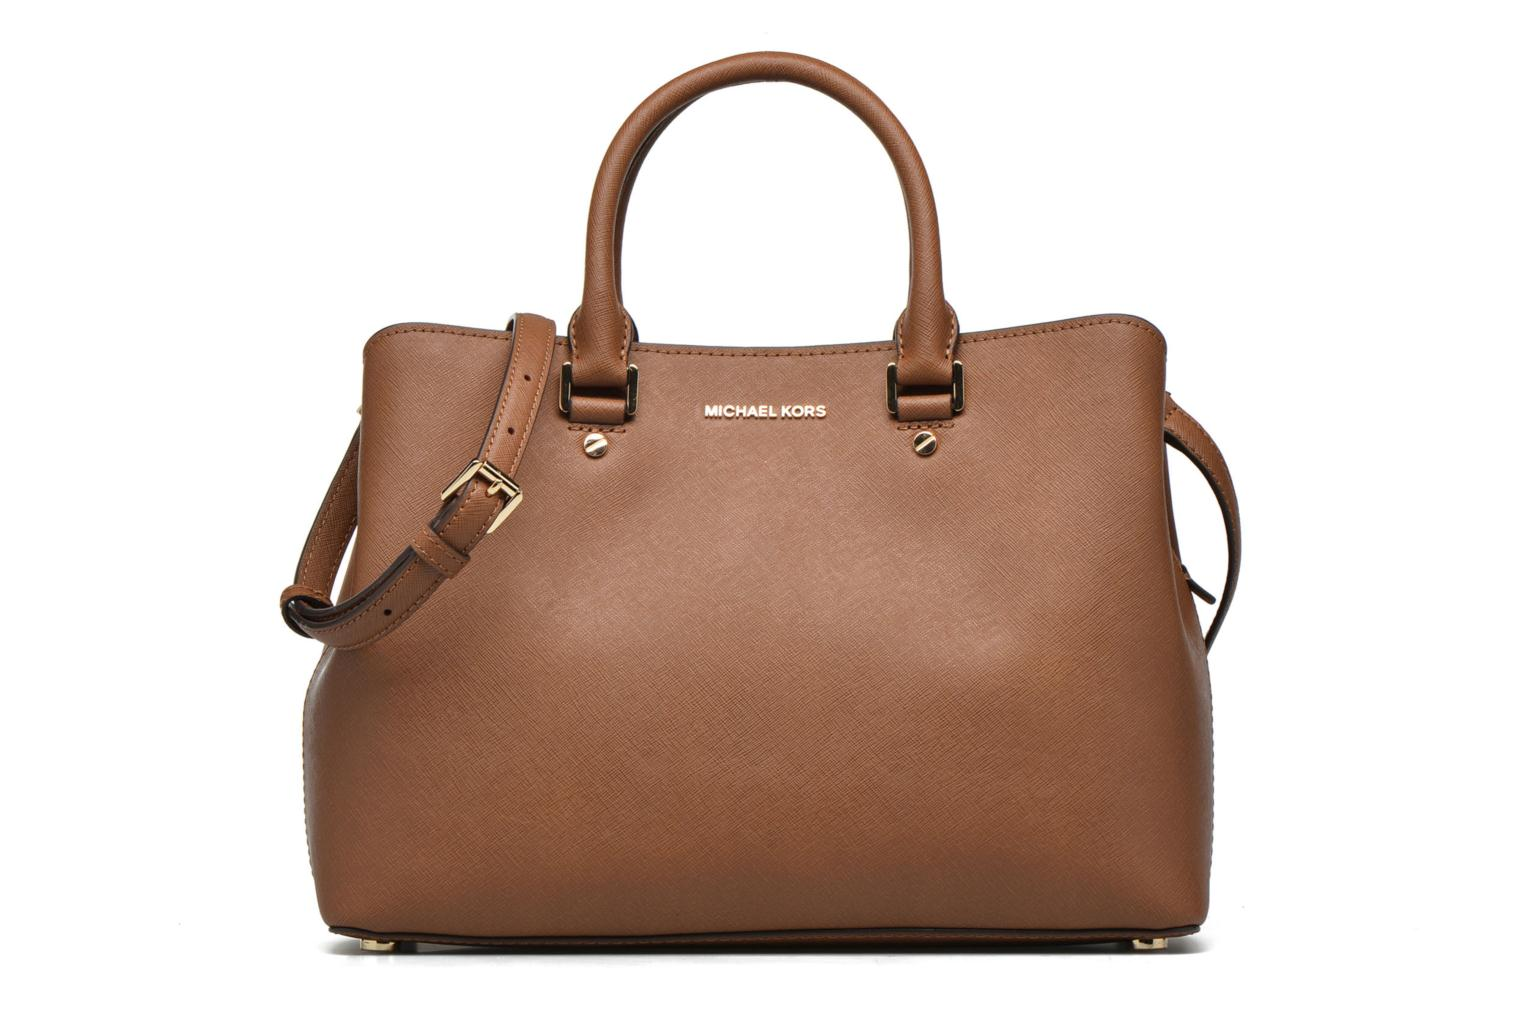 SAVANNAH LG SATCHEL Luggage